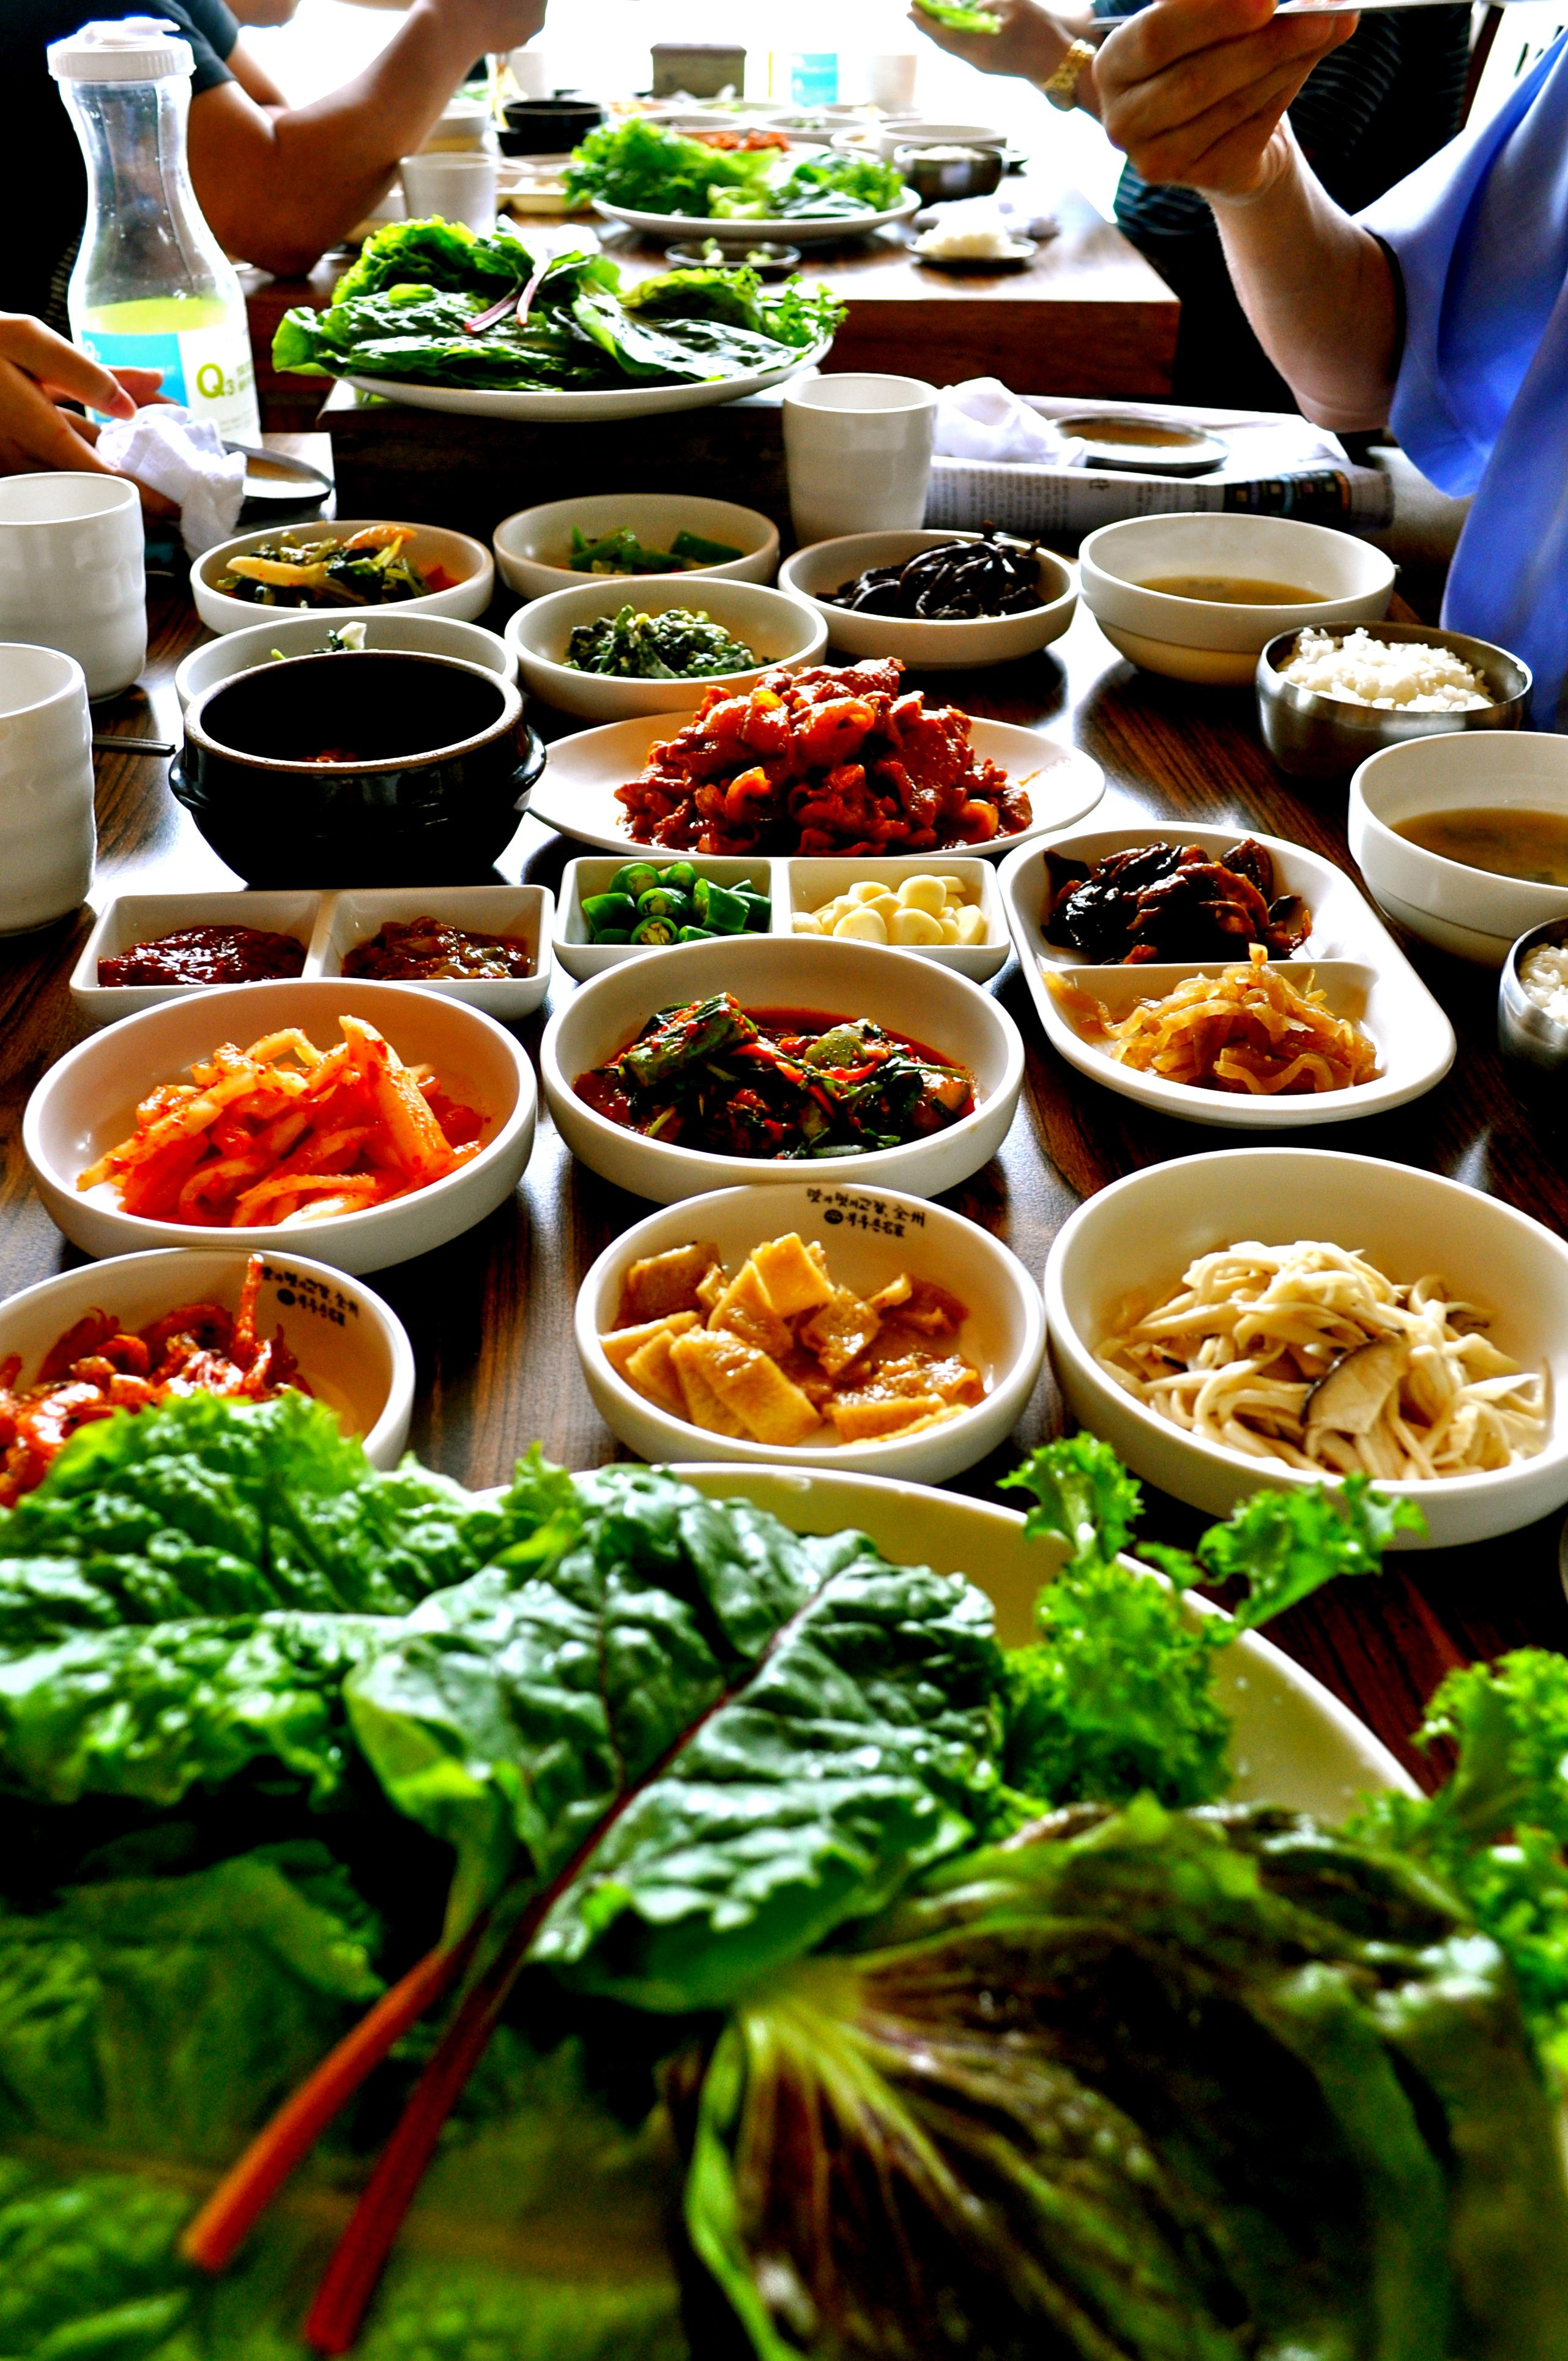 Typical korean table - the table is about to break from so ...